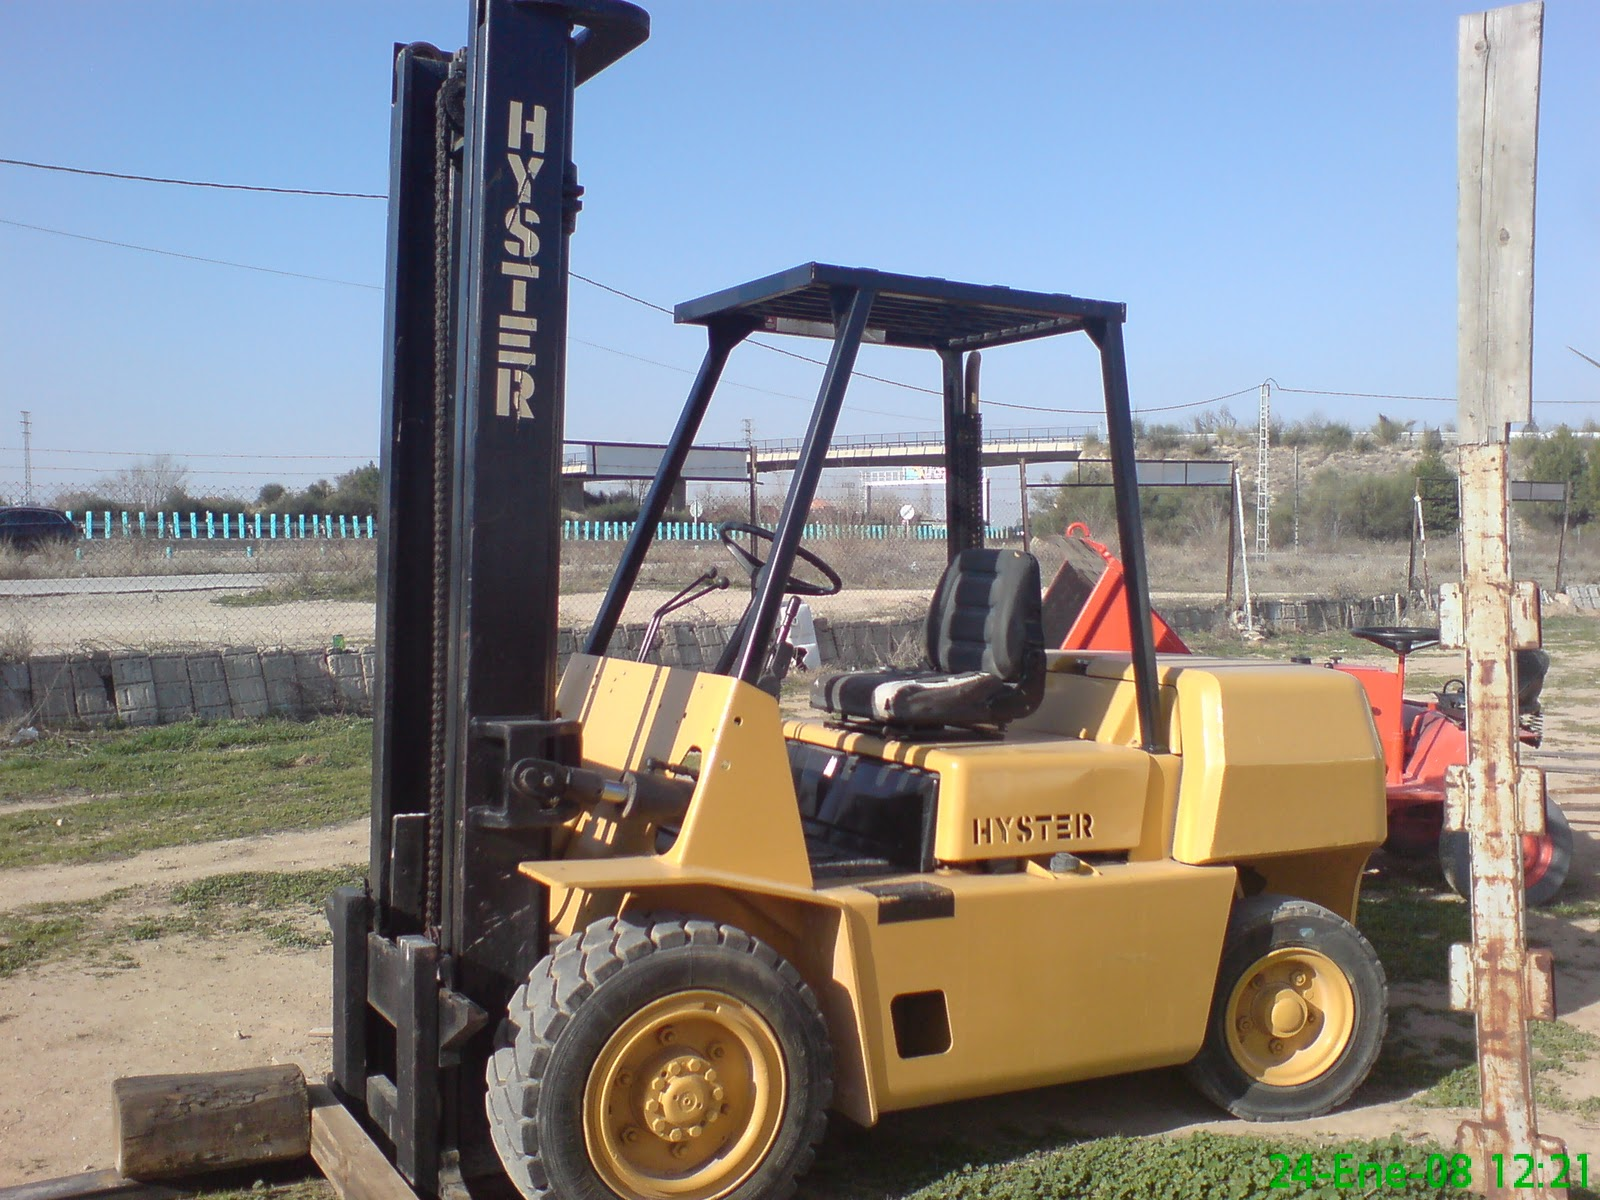 Hyster s photo - 1